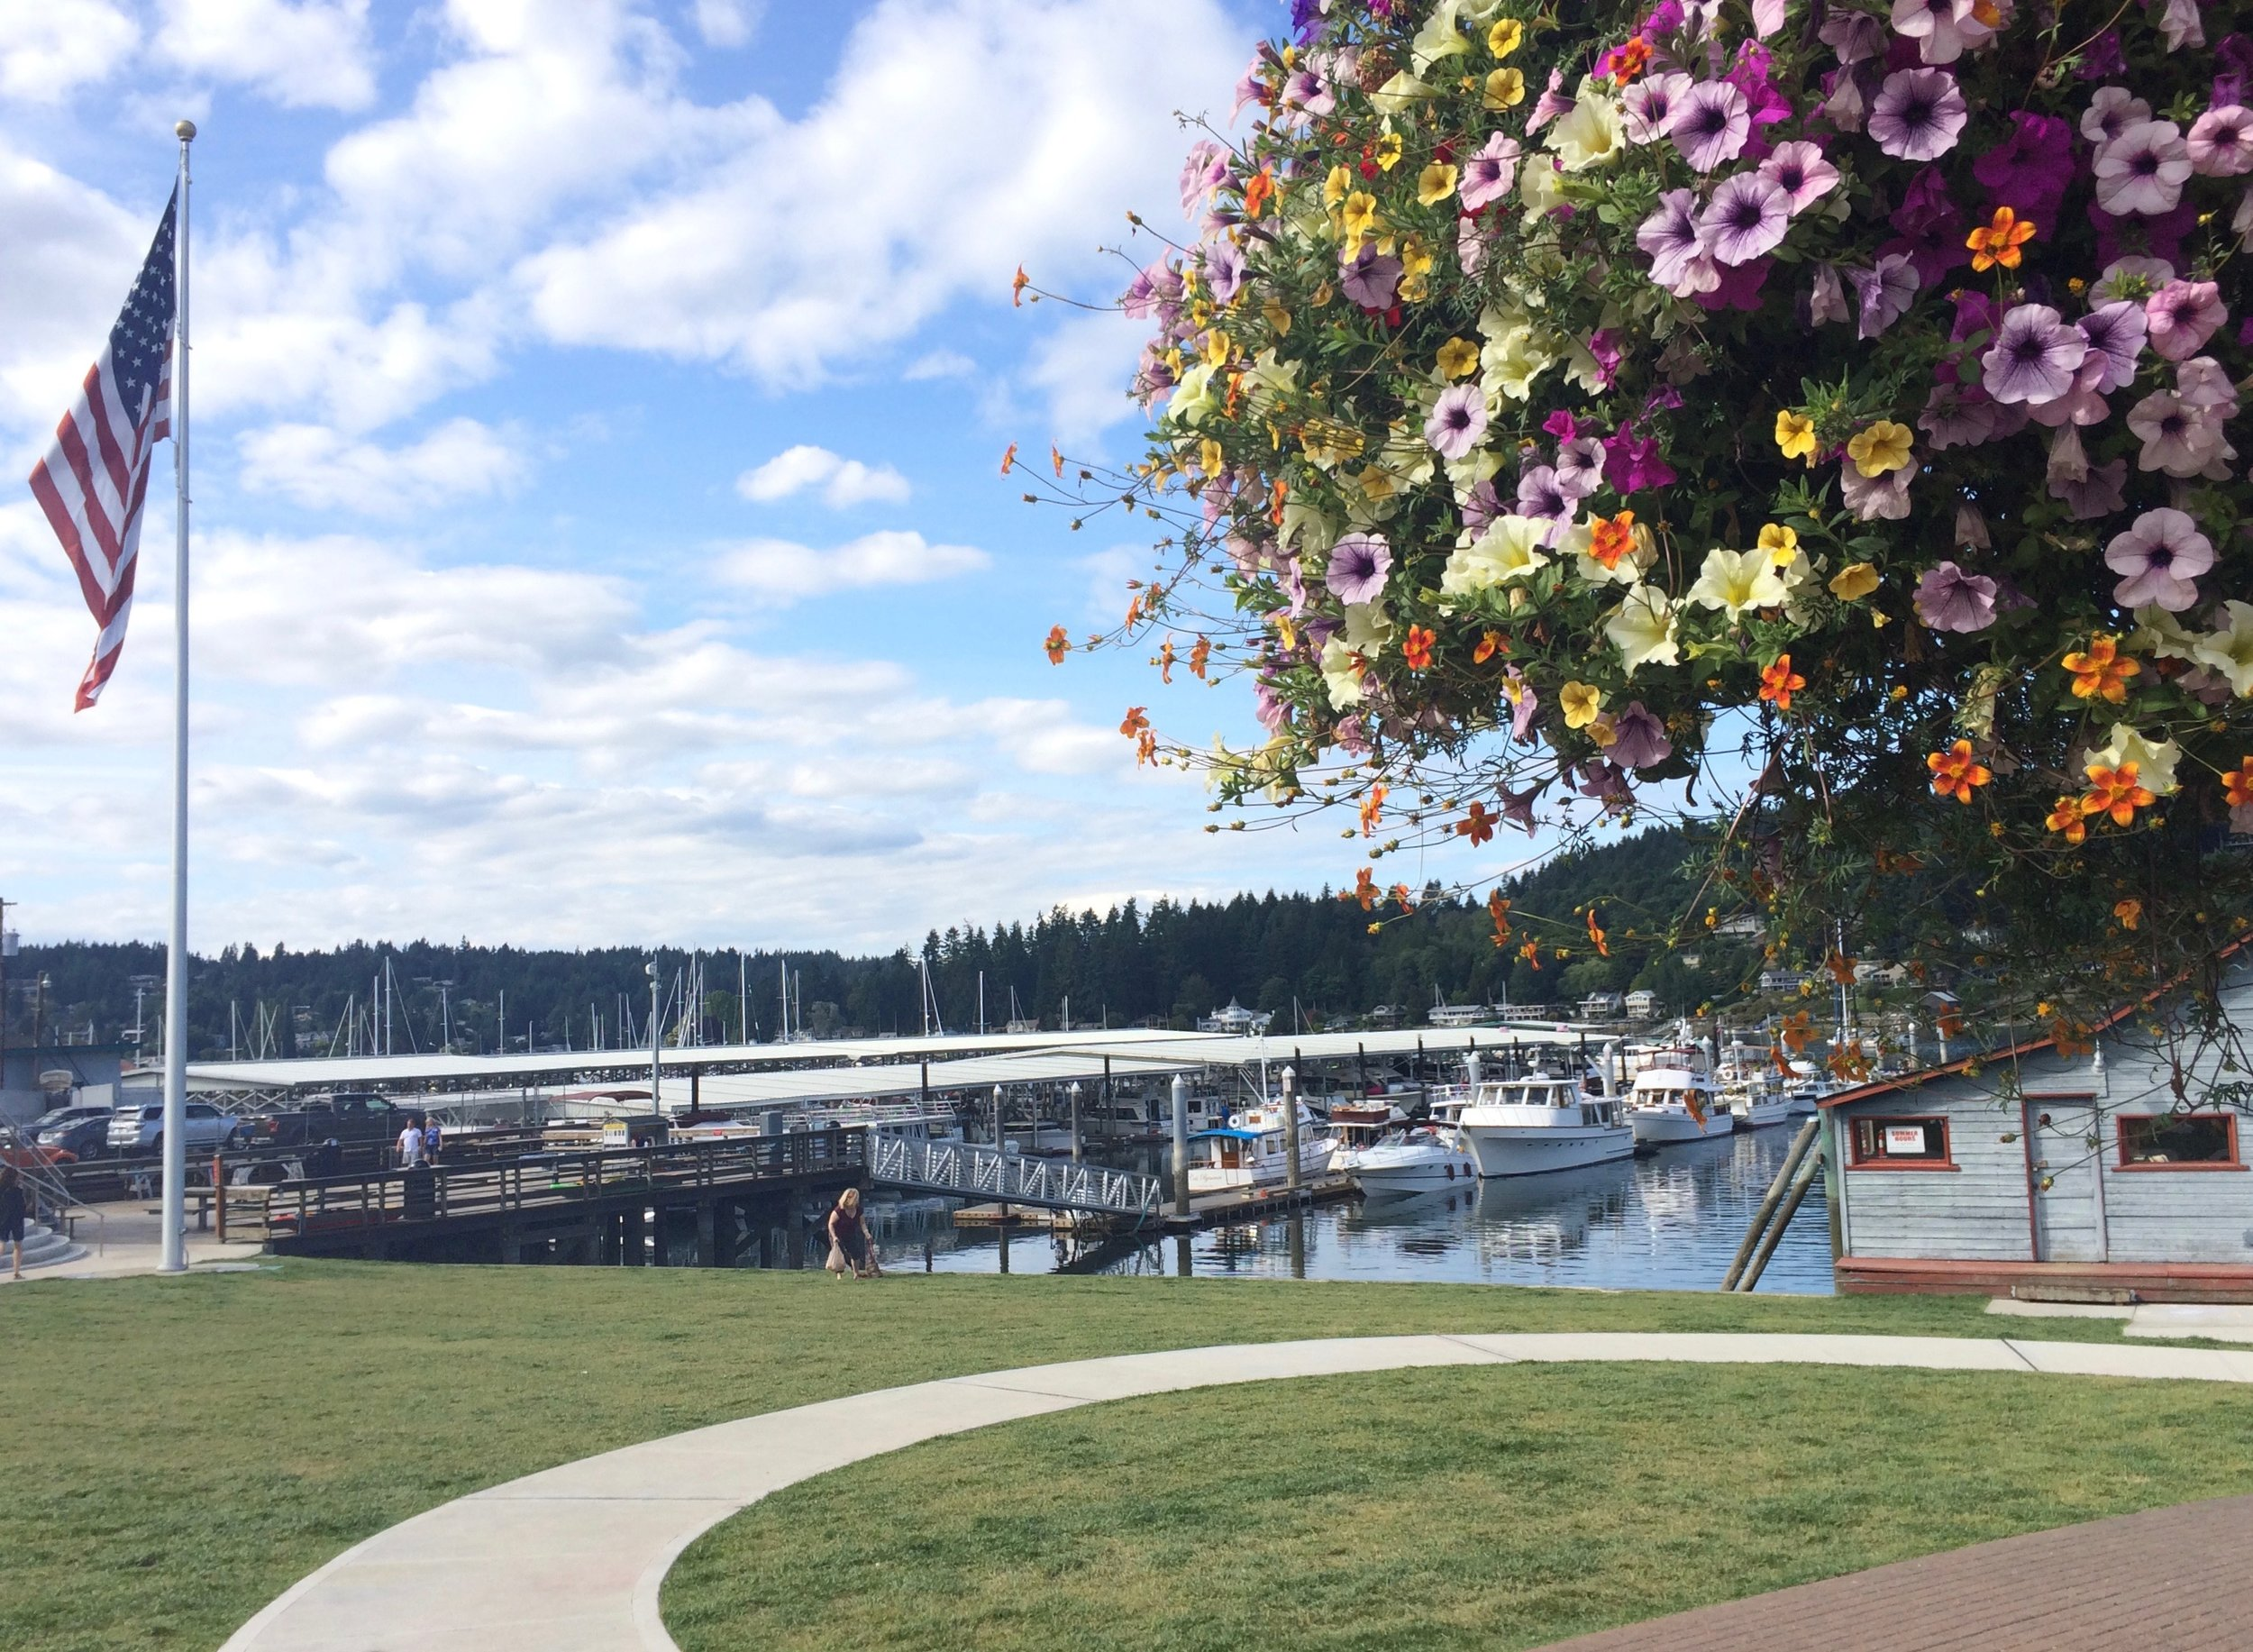 Nearby Gig Harbor offers lots of restaurants, pubs, and places to stock up on groceries.